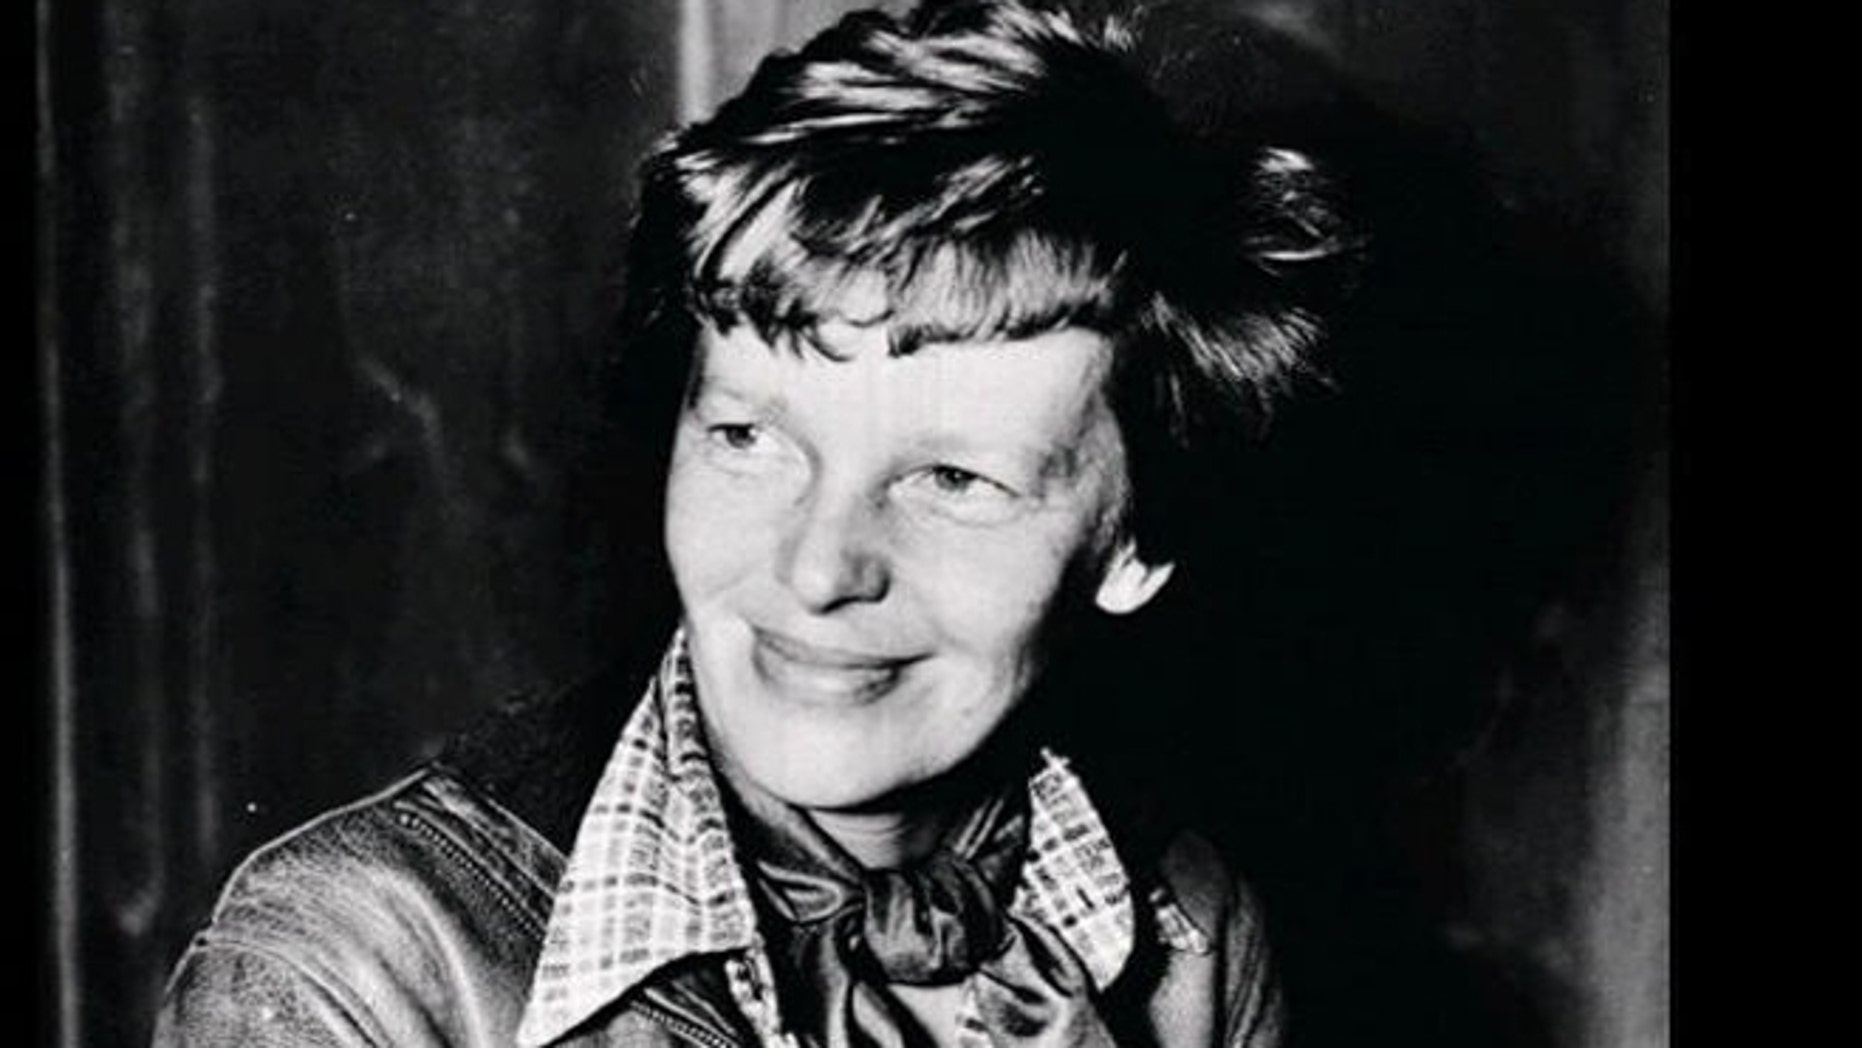 Earhart's plane went down in 1937 and her disappearance has been a mystery ever since.